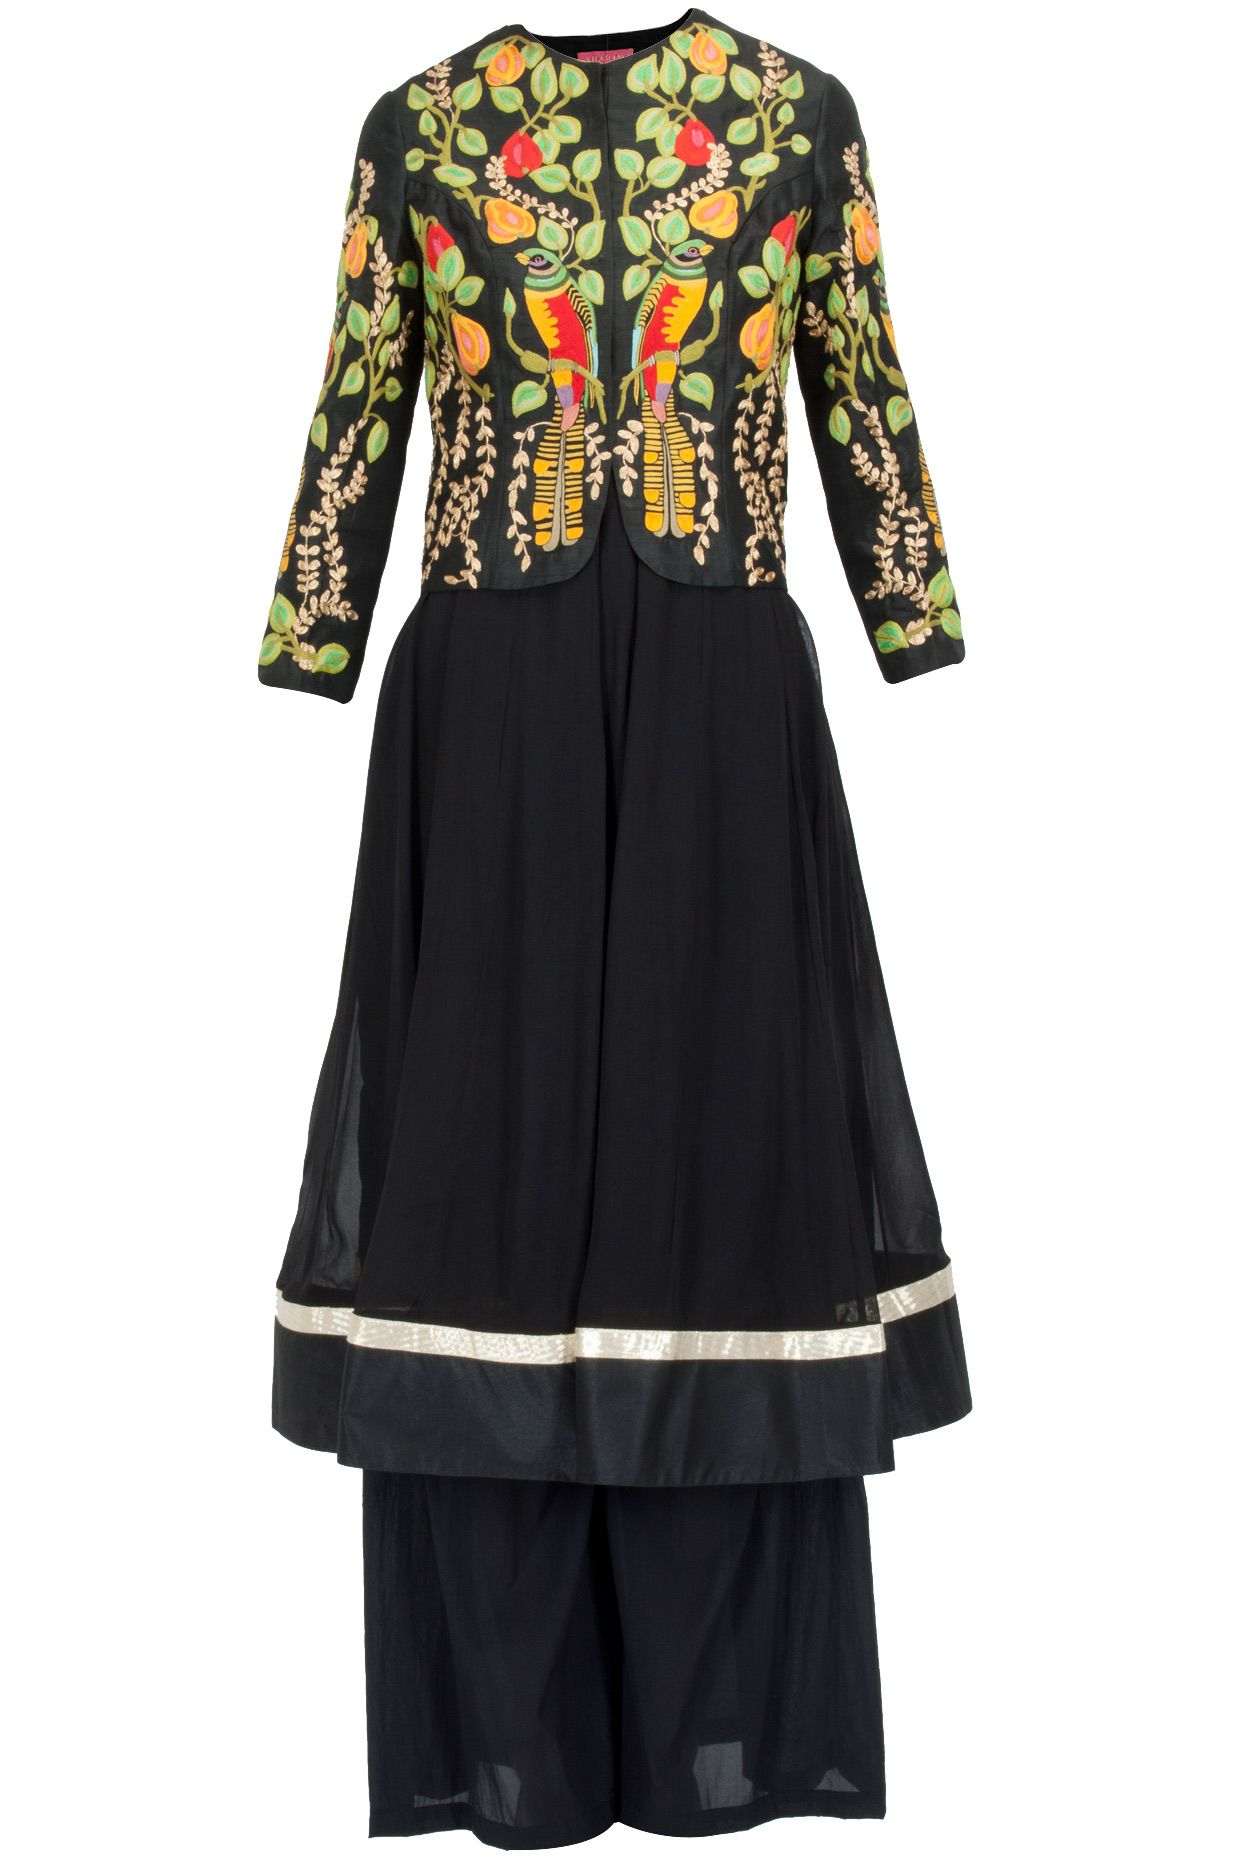 Black anarkali set with forest embroidered jacket available only at Pernia's Pop-Up Shop.